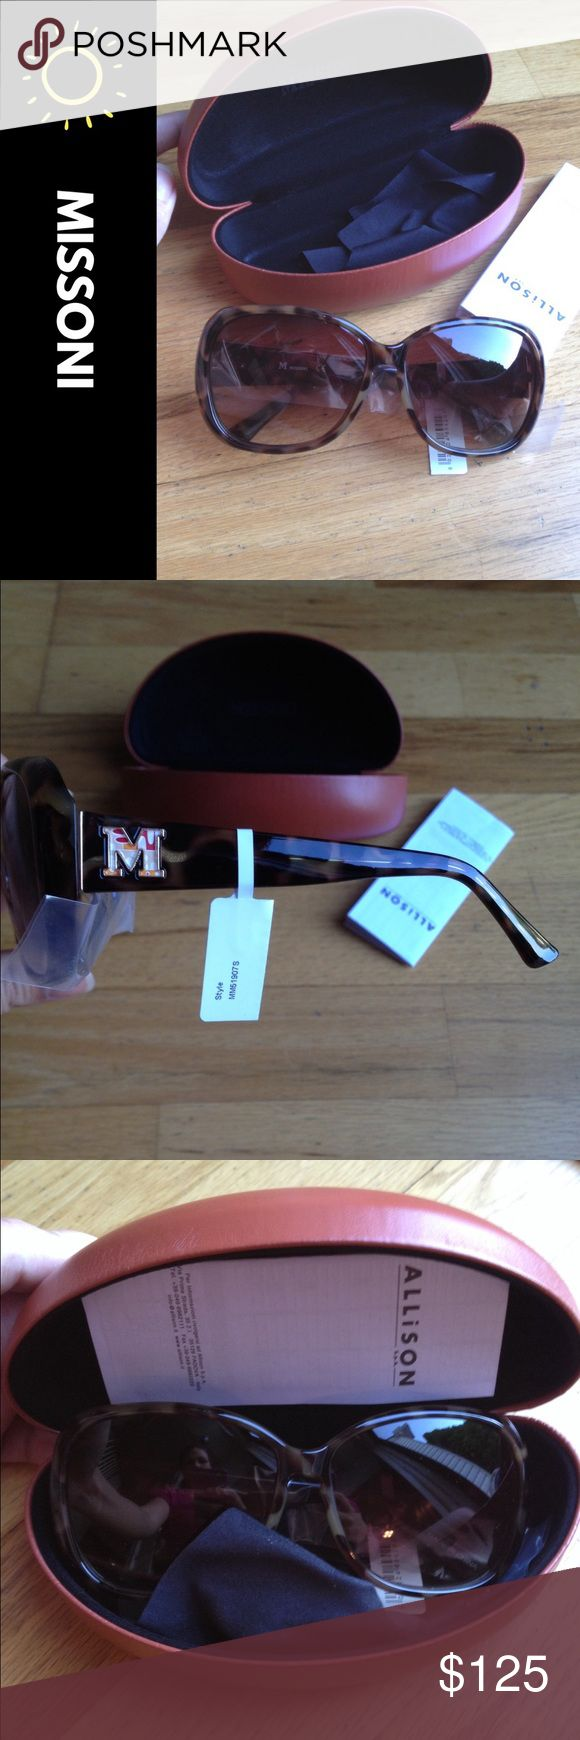 Final Sale! New Missoni Sunglasses. New classic style. Comes with case. Price Firm! Missoni Accessories Sunglasses